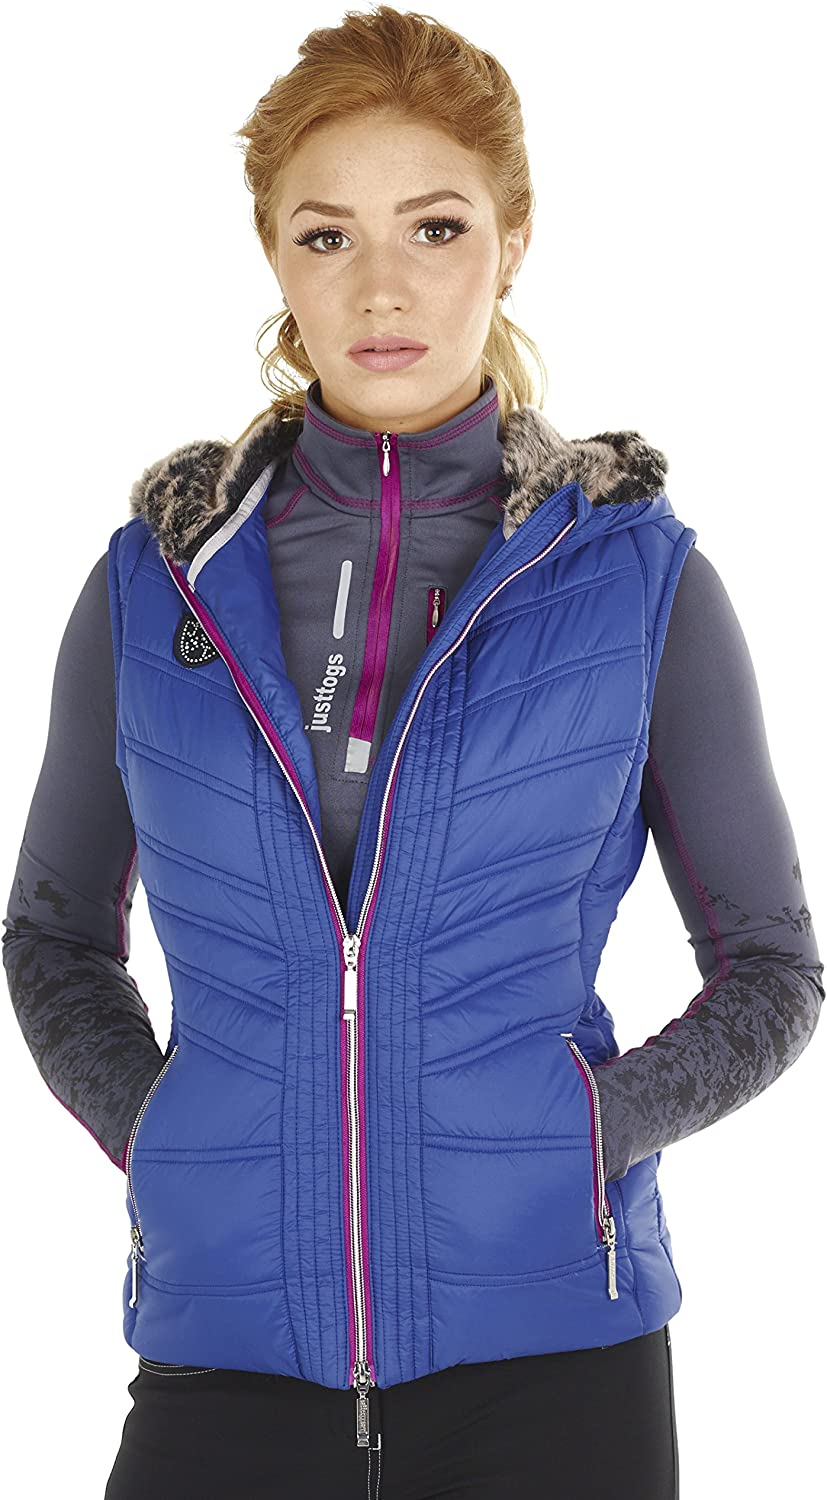 Just Togs Bexley Body Warmer